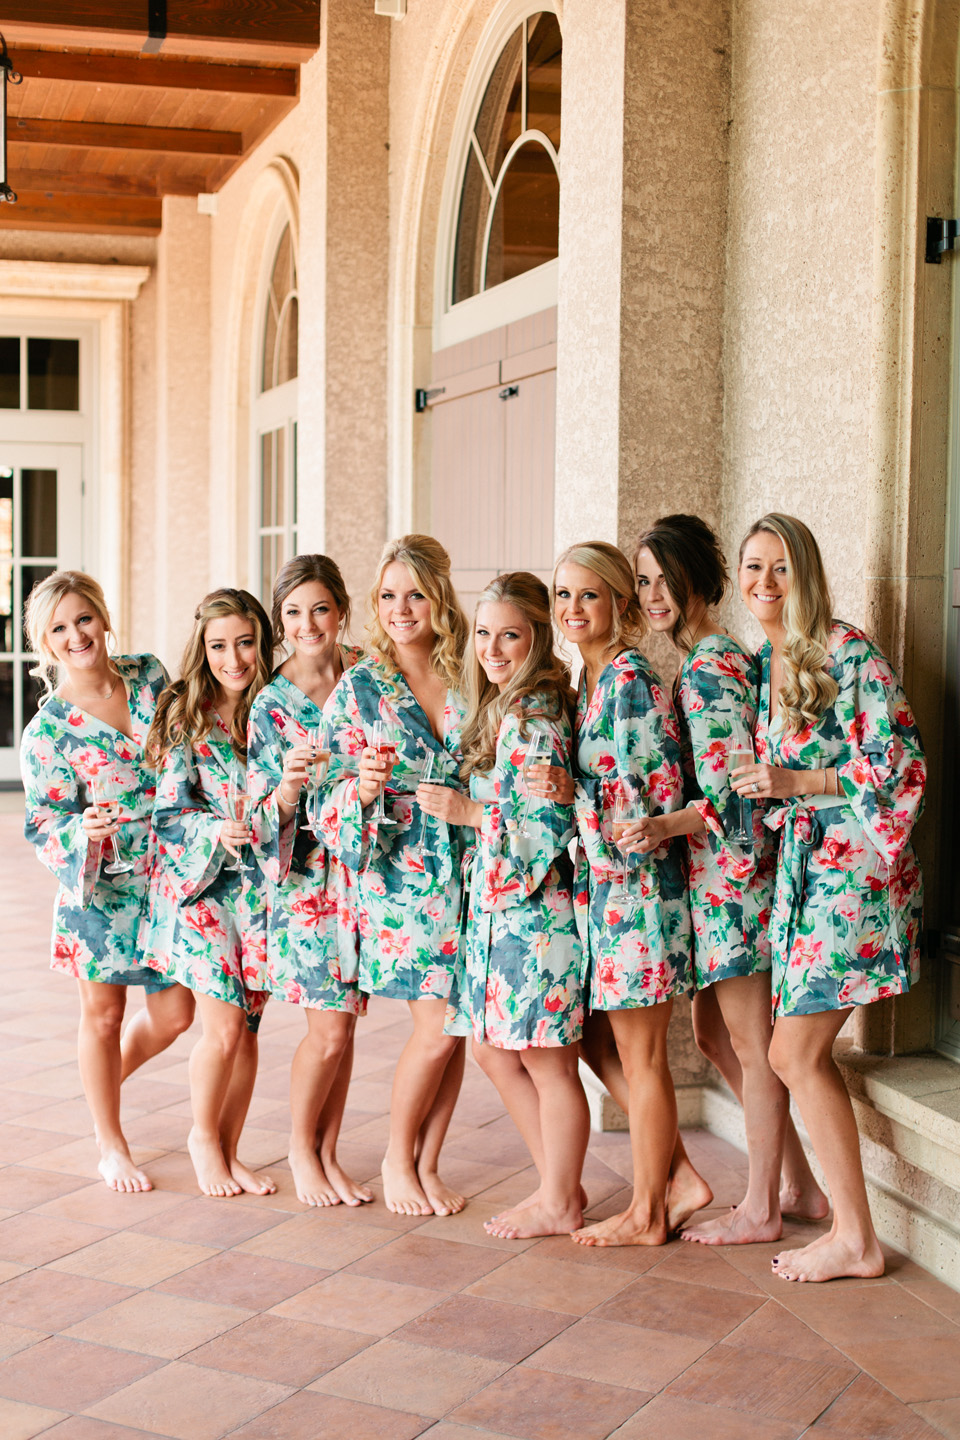 Picture of bridesmaids in floral robes getting ready for a wedding day at TPC Sawgrass in Ponte Vedra, Florida